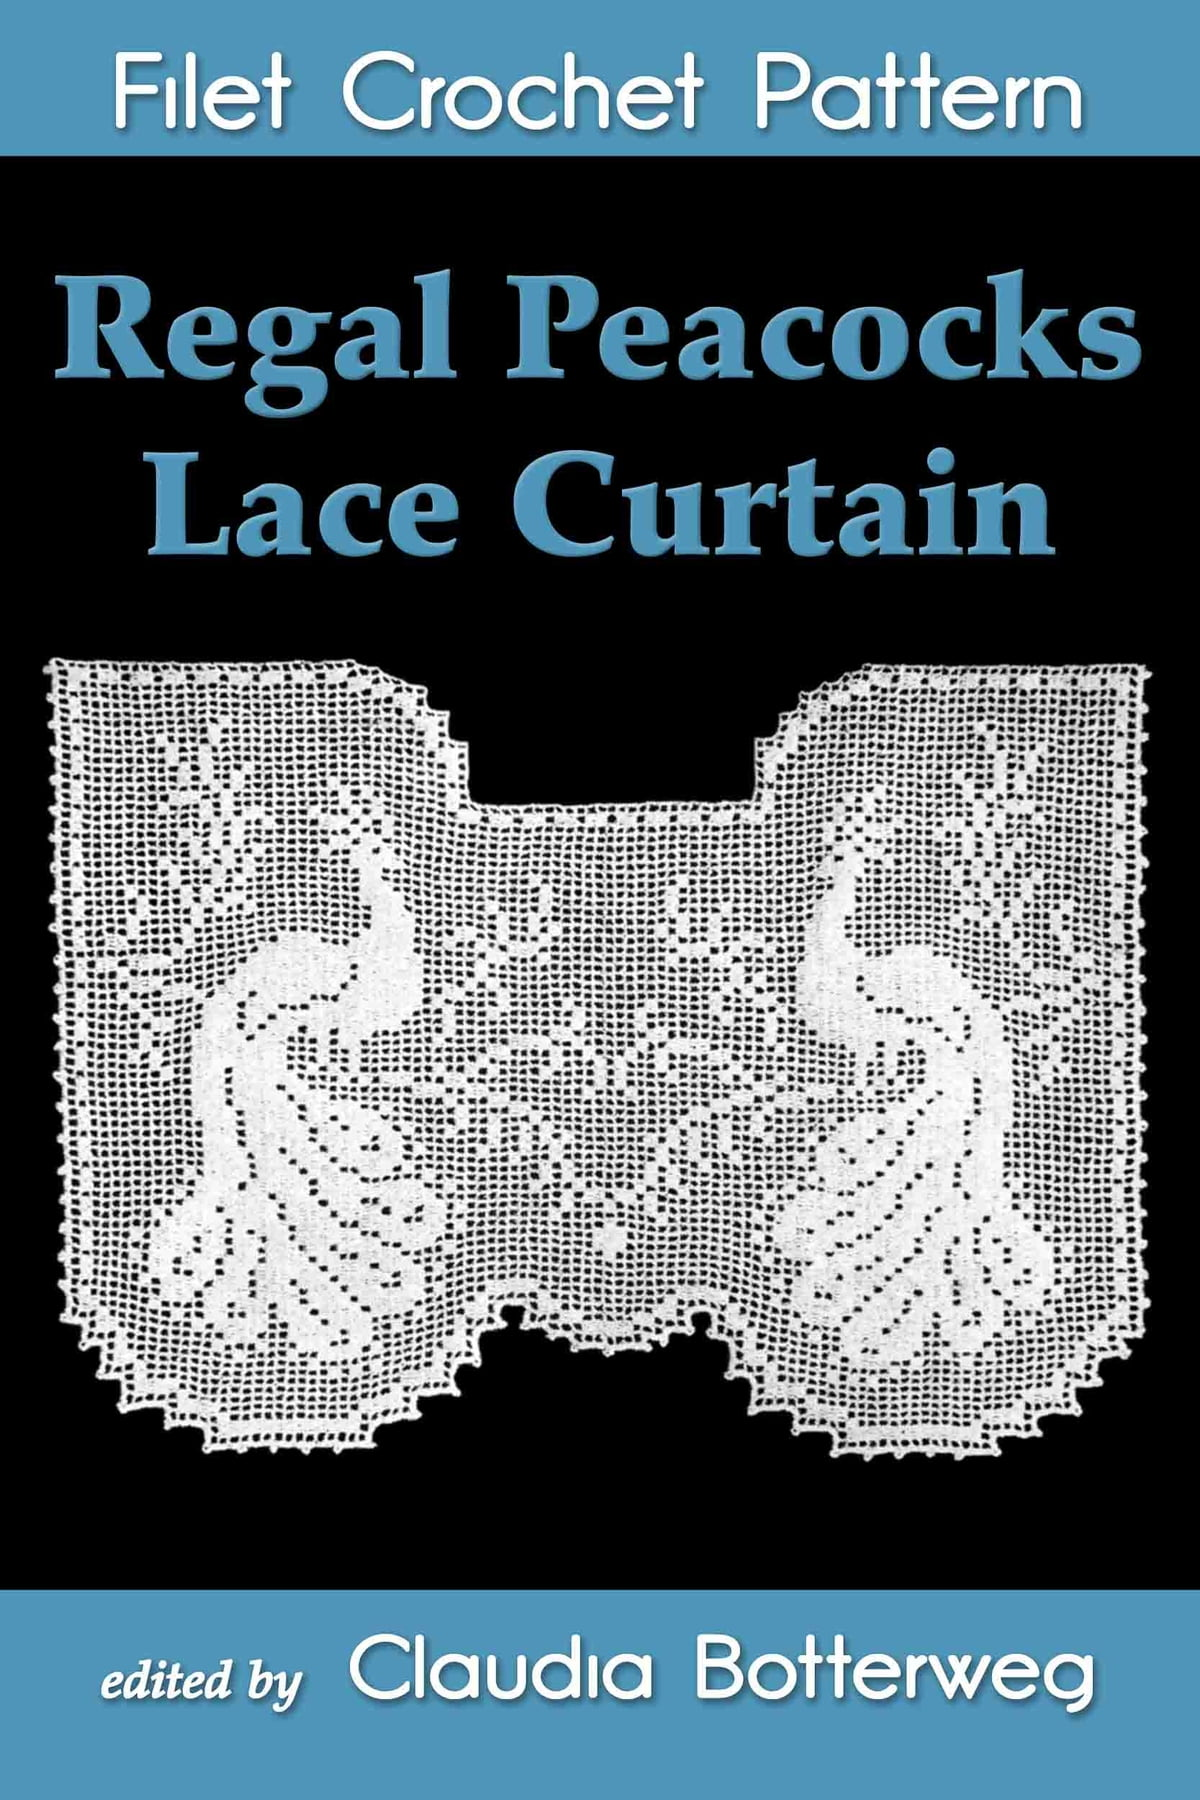 Regal Peacocks Lace Curtain Filet Crochet Pattern Ebook By Claudia Botterweg 1230000248560 Rakuten Kobo Greece